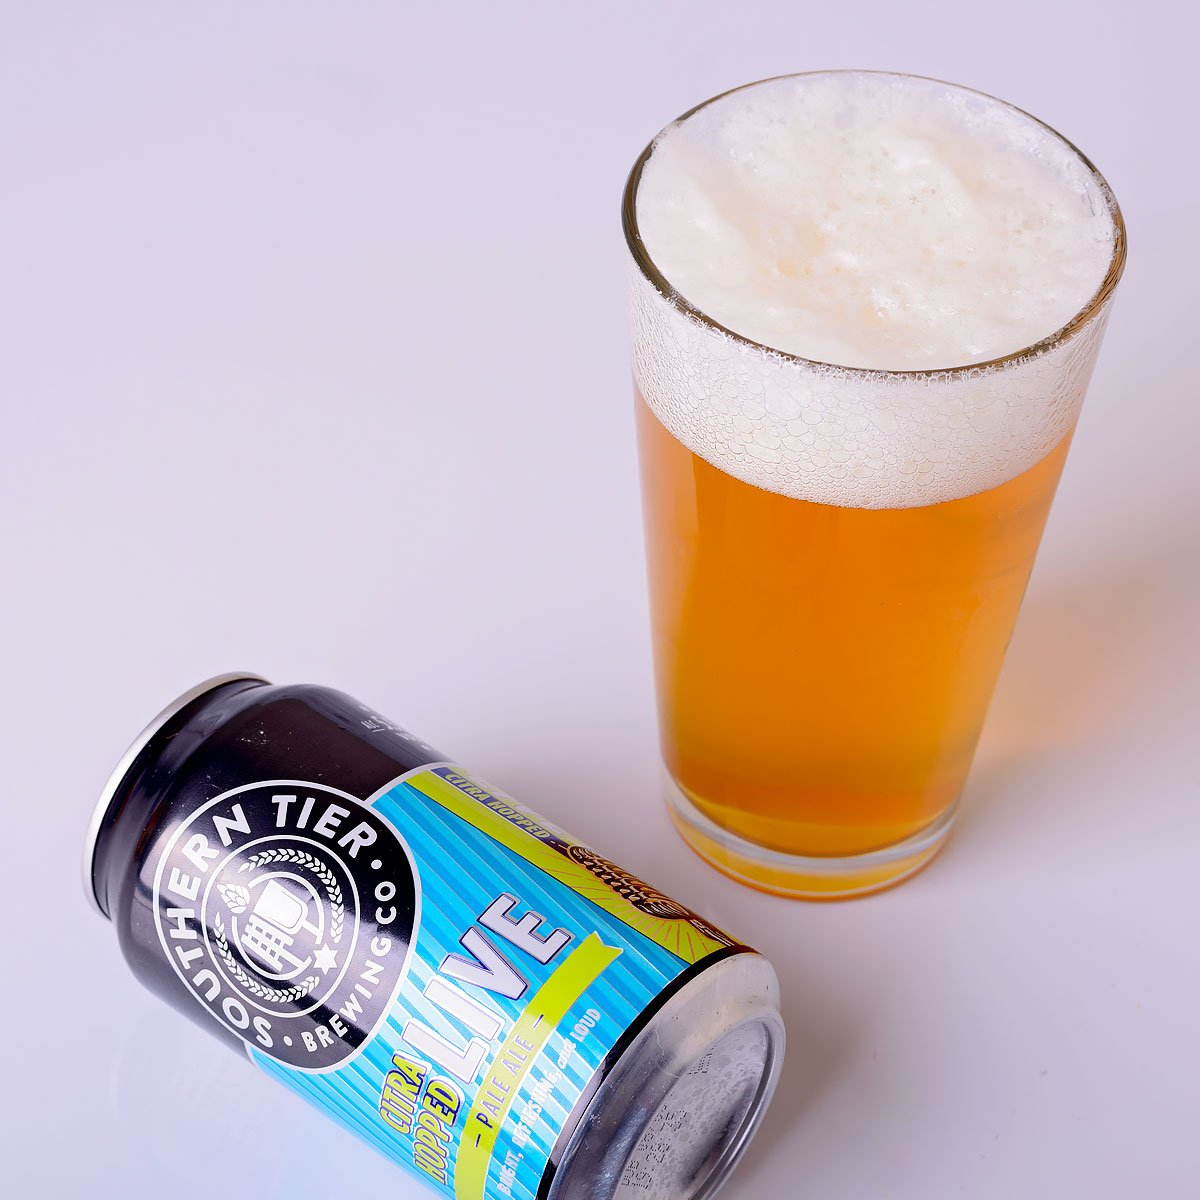 Citra Hopped Live Pale Ale, an American Pale Ale by Southern Tier Brewing Co.